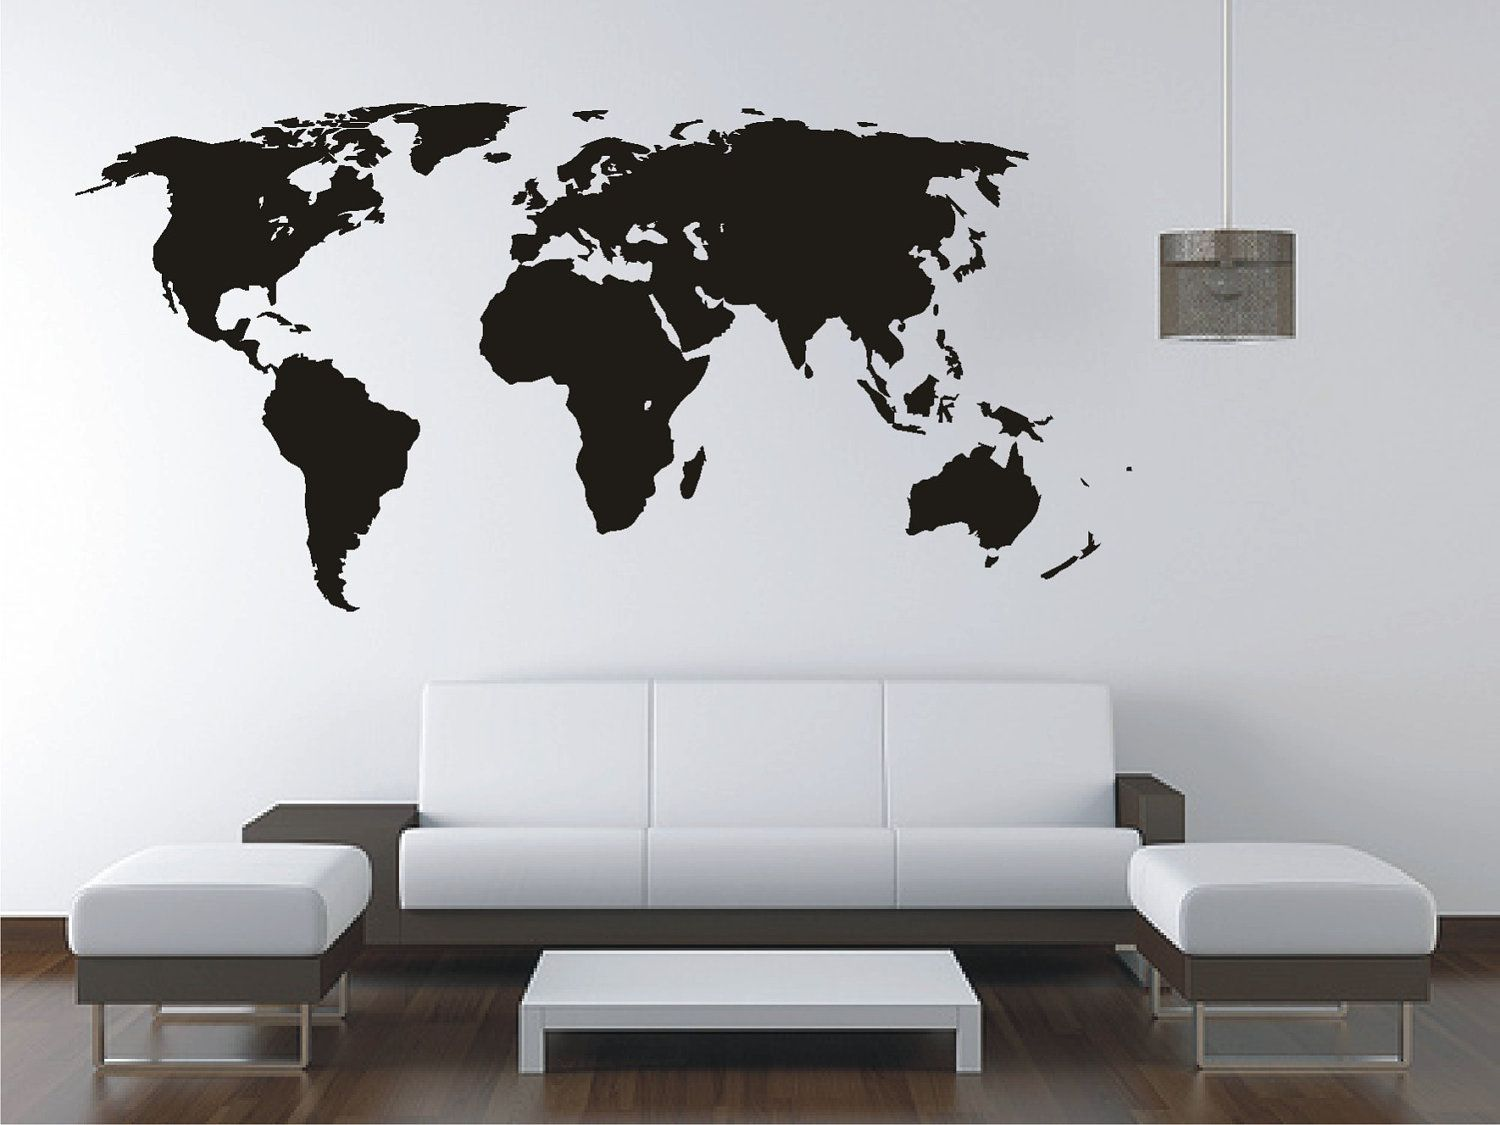 Großartig Wall Tattoo Das Beste Von Large World Map Vinyl Decal, Sticker, Tattoo.